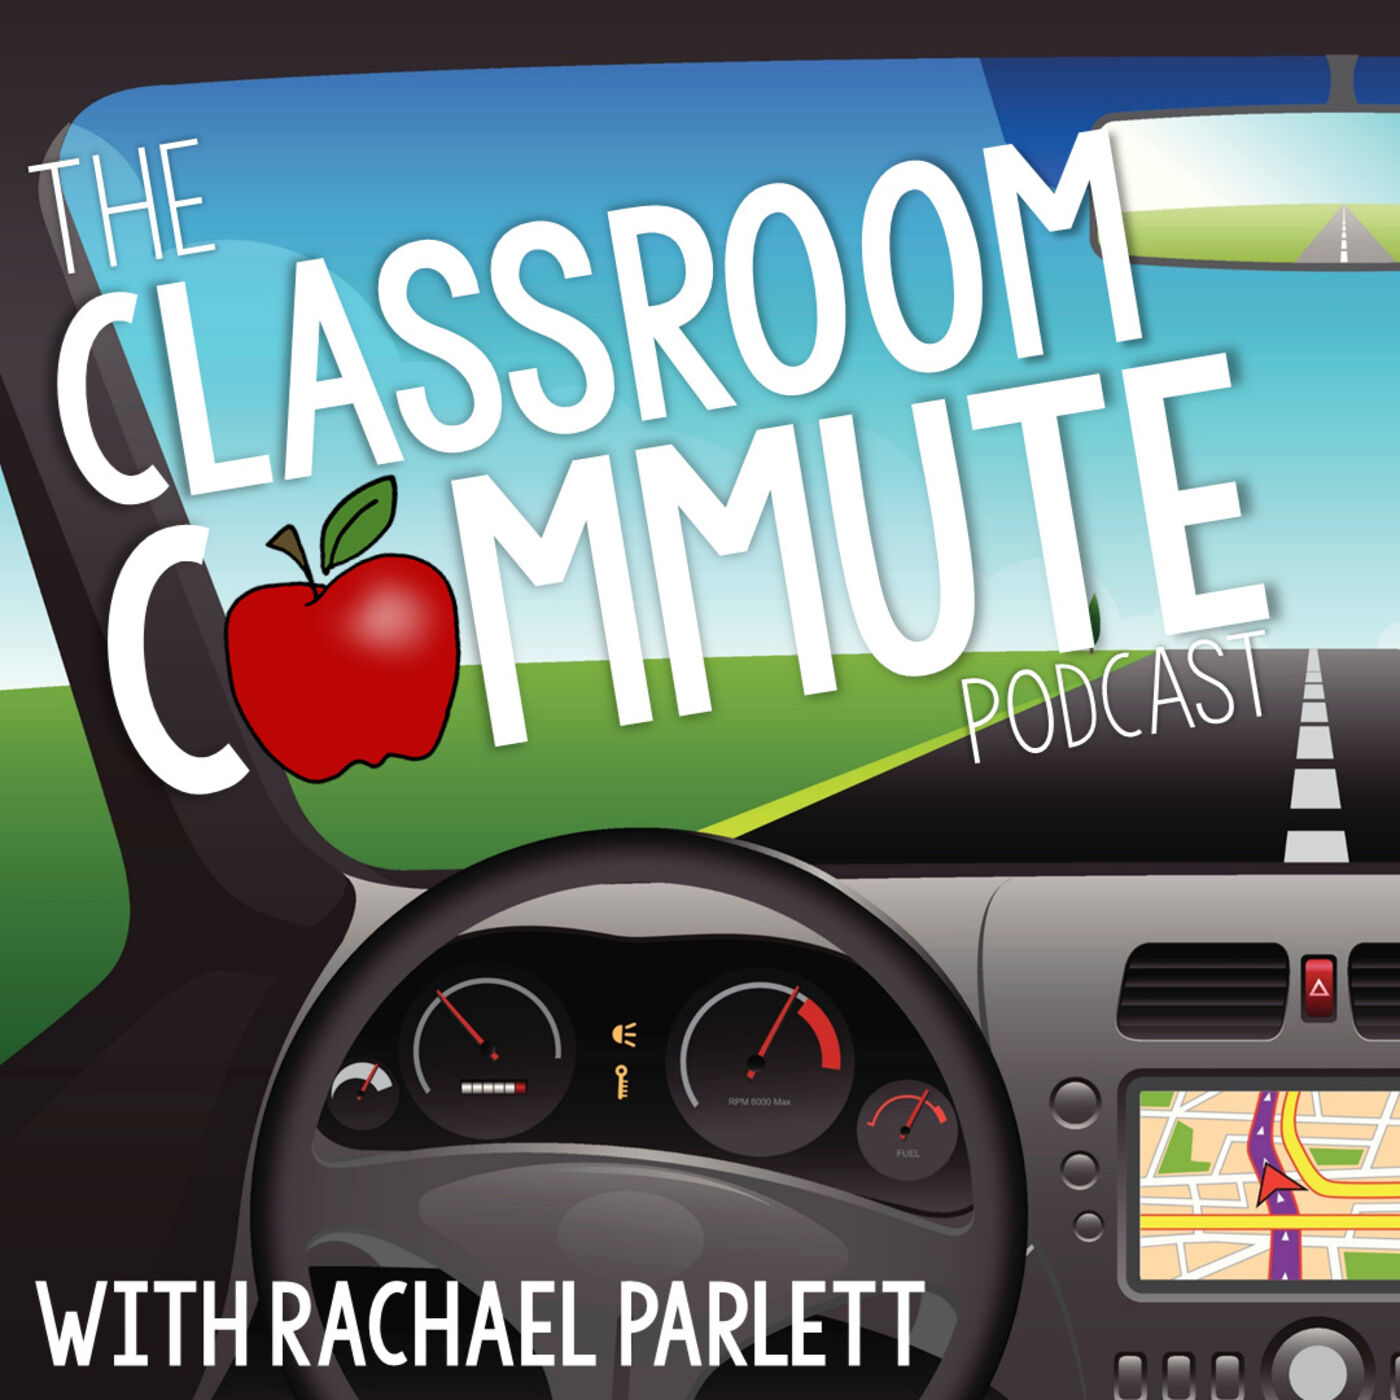 The Classroom Commute Logo